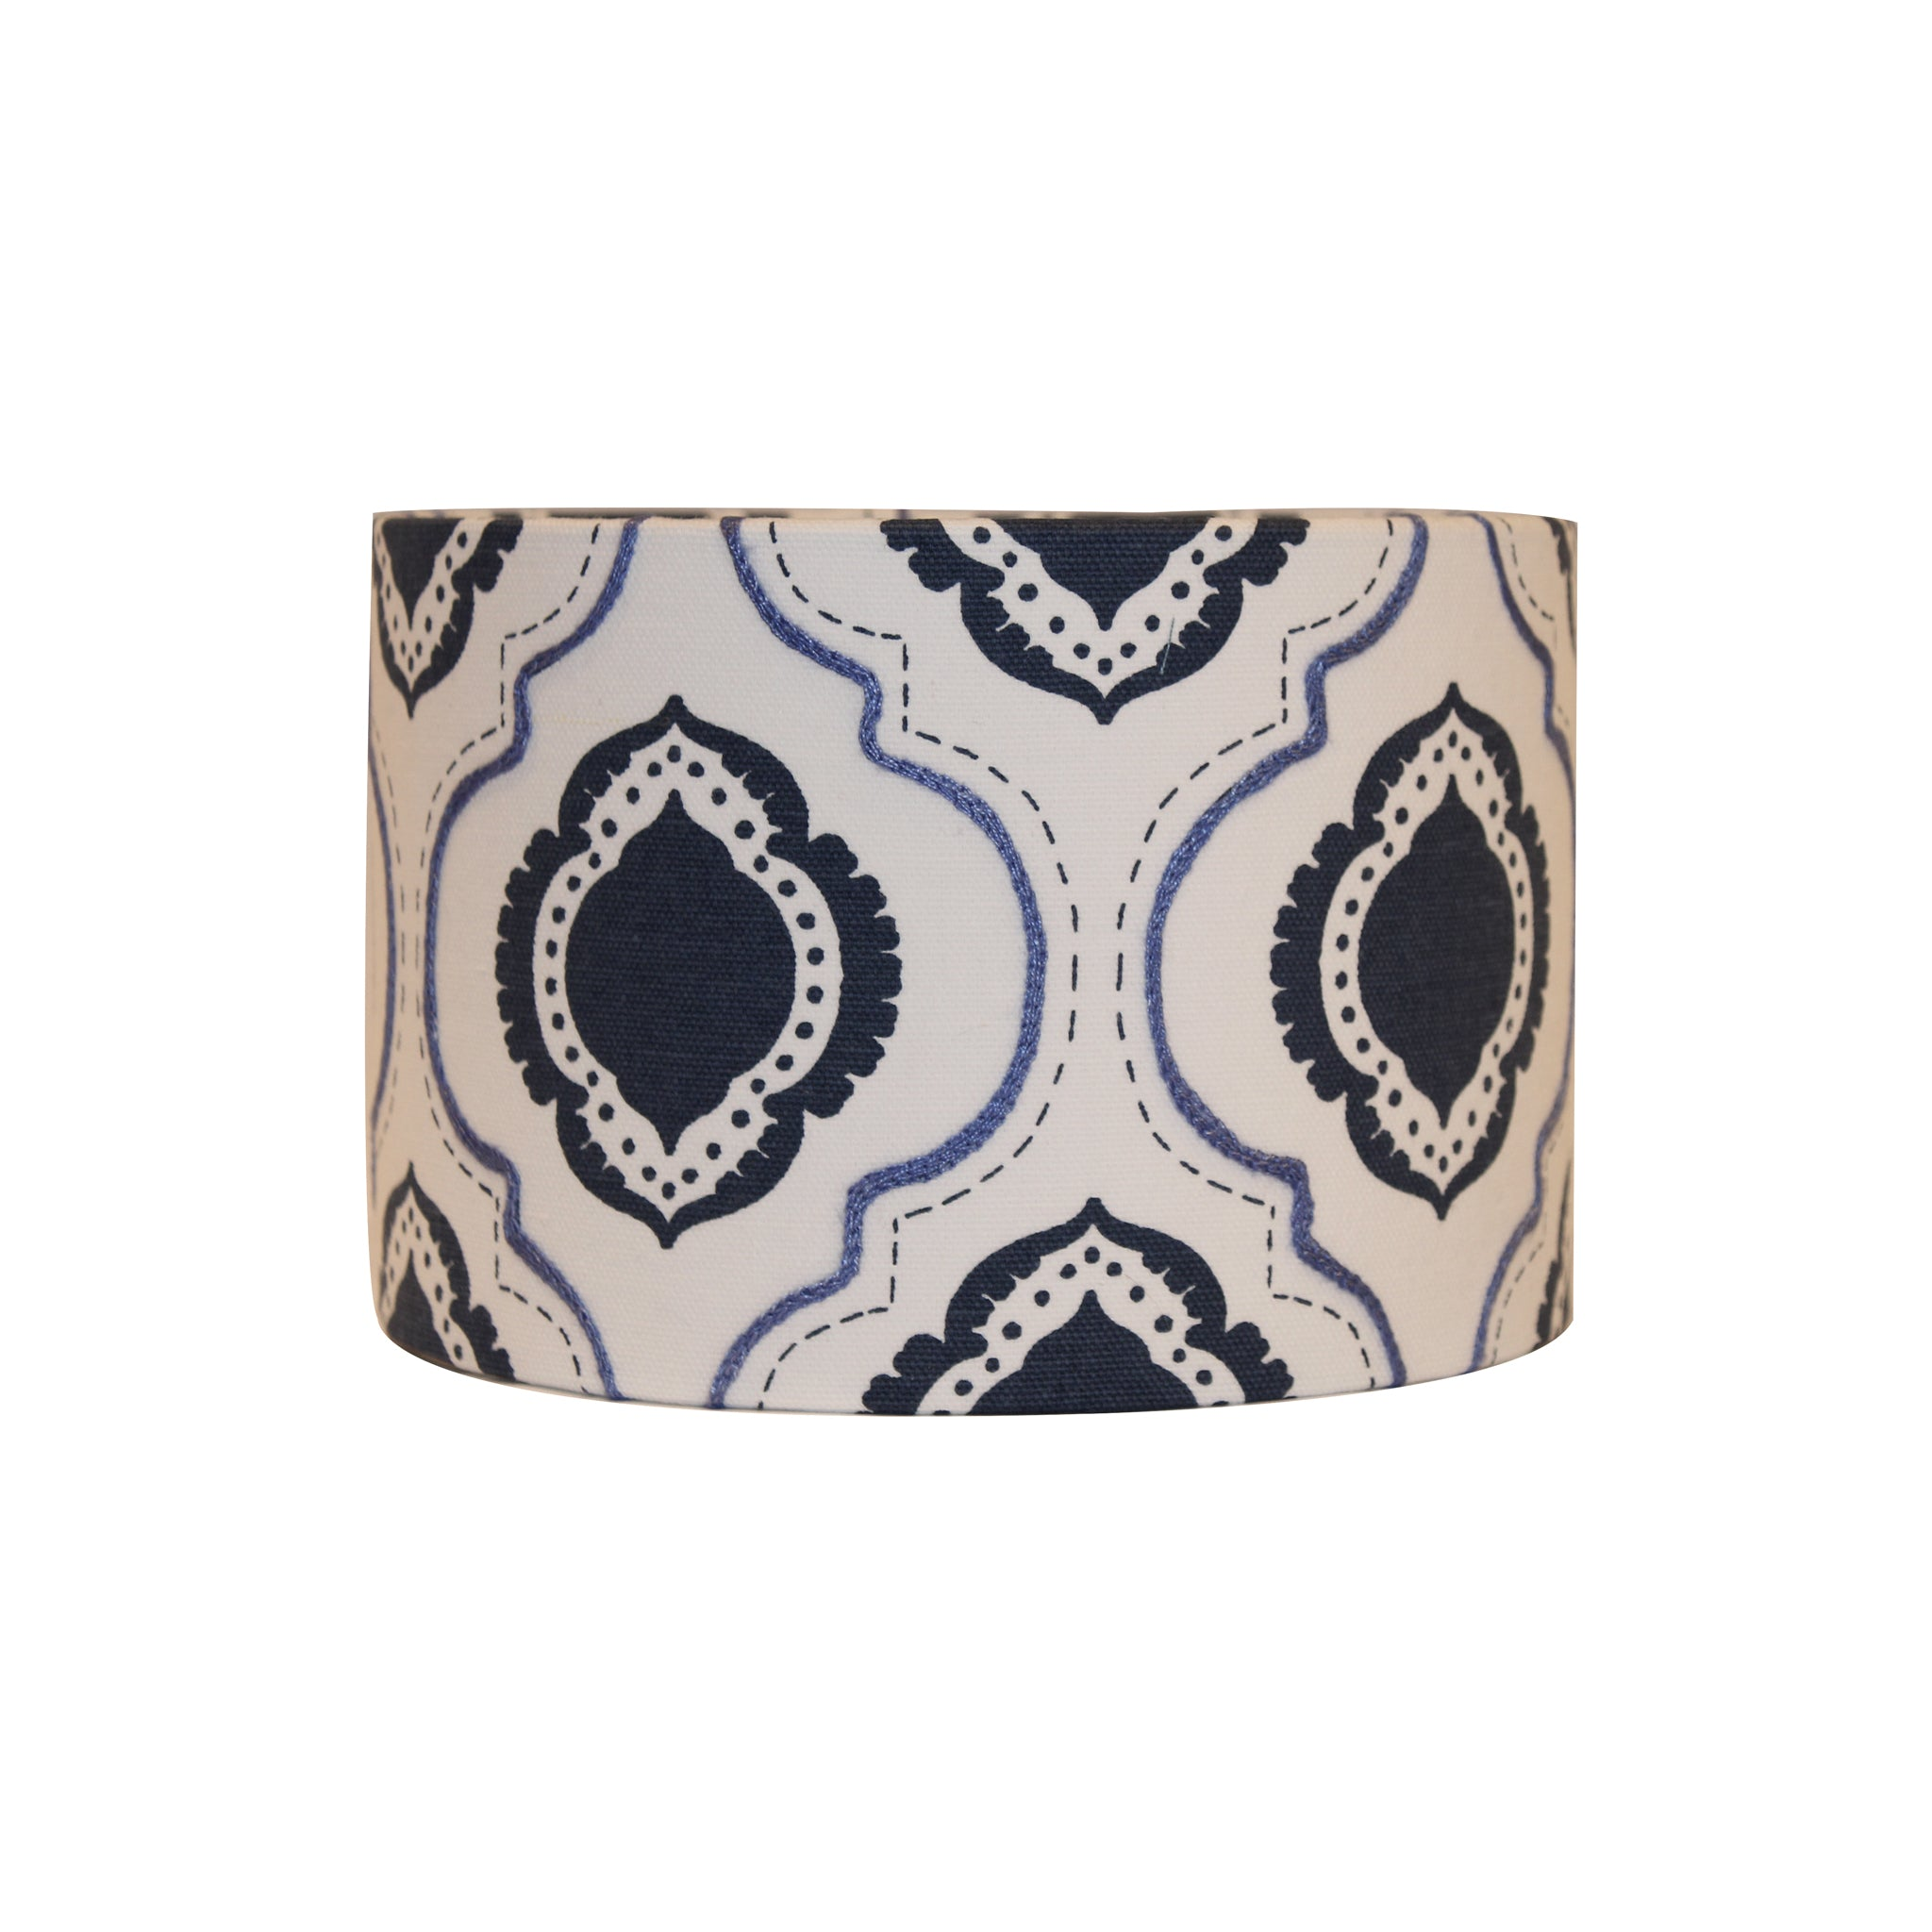 Persian blue pattern lampshade